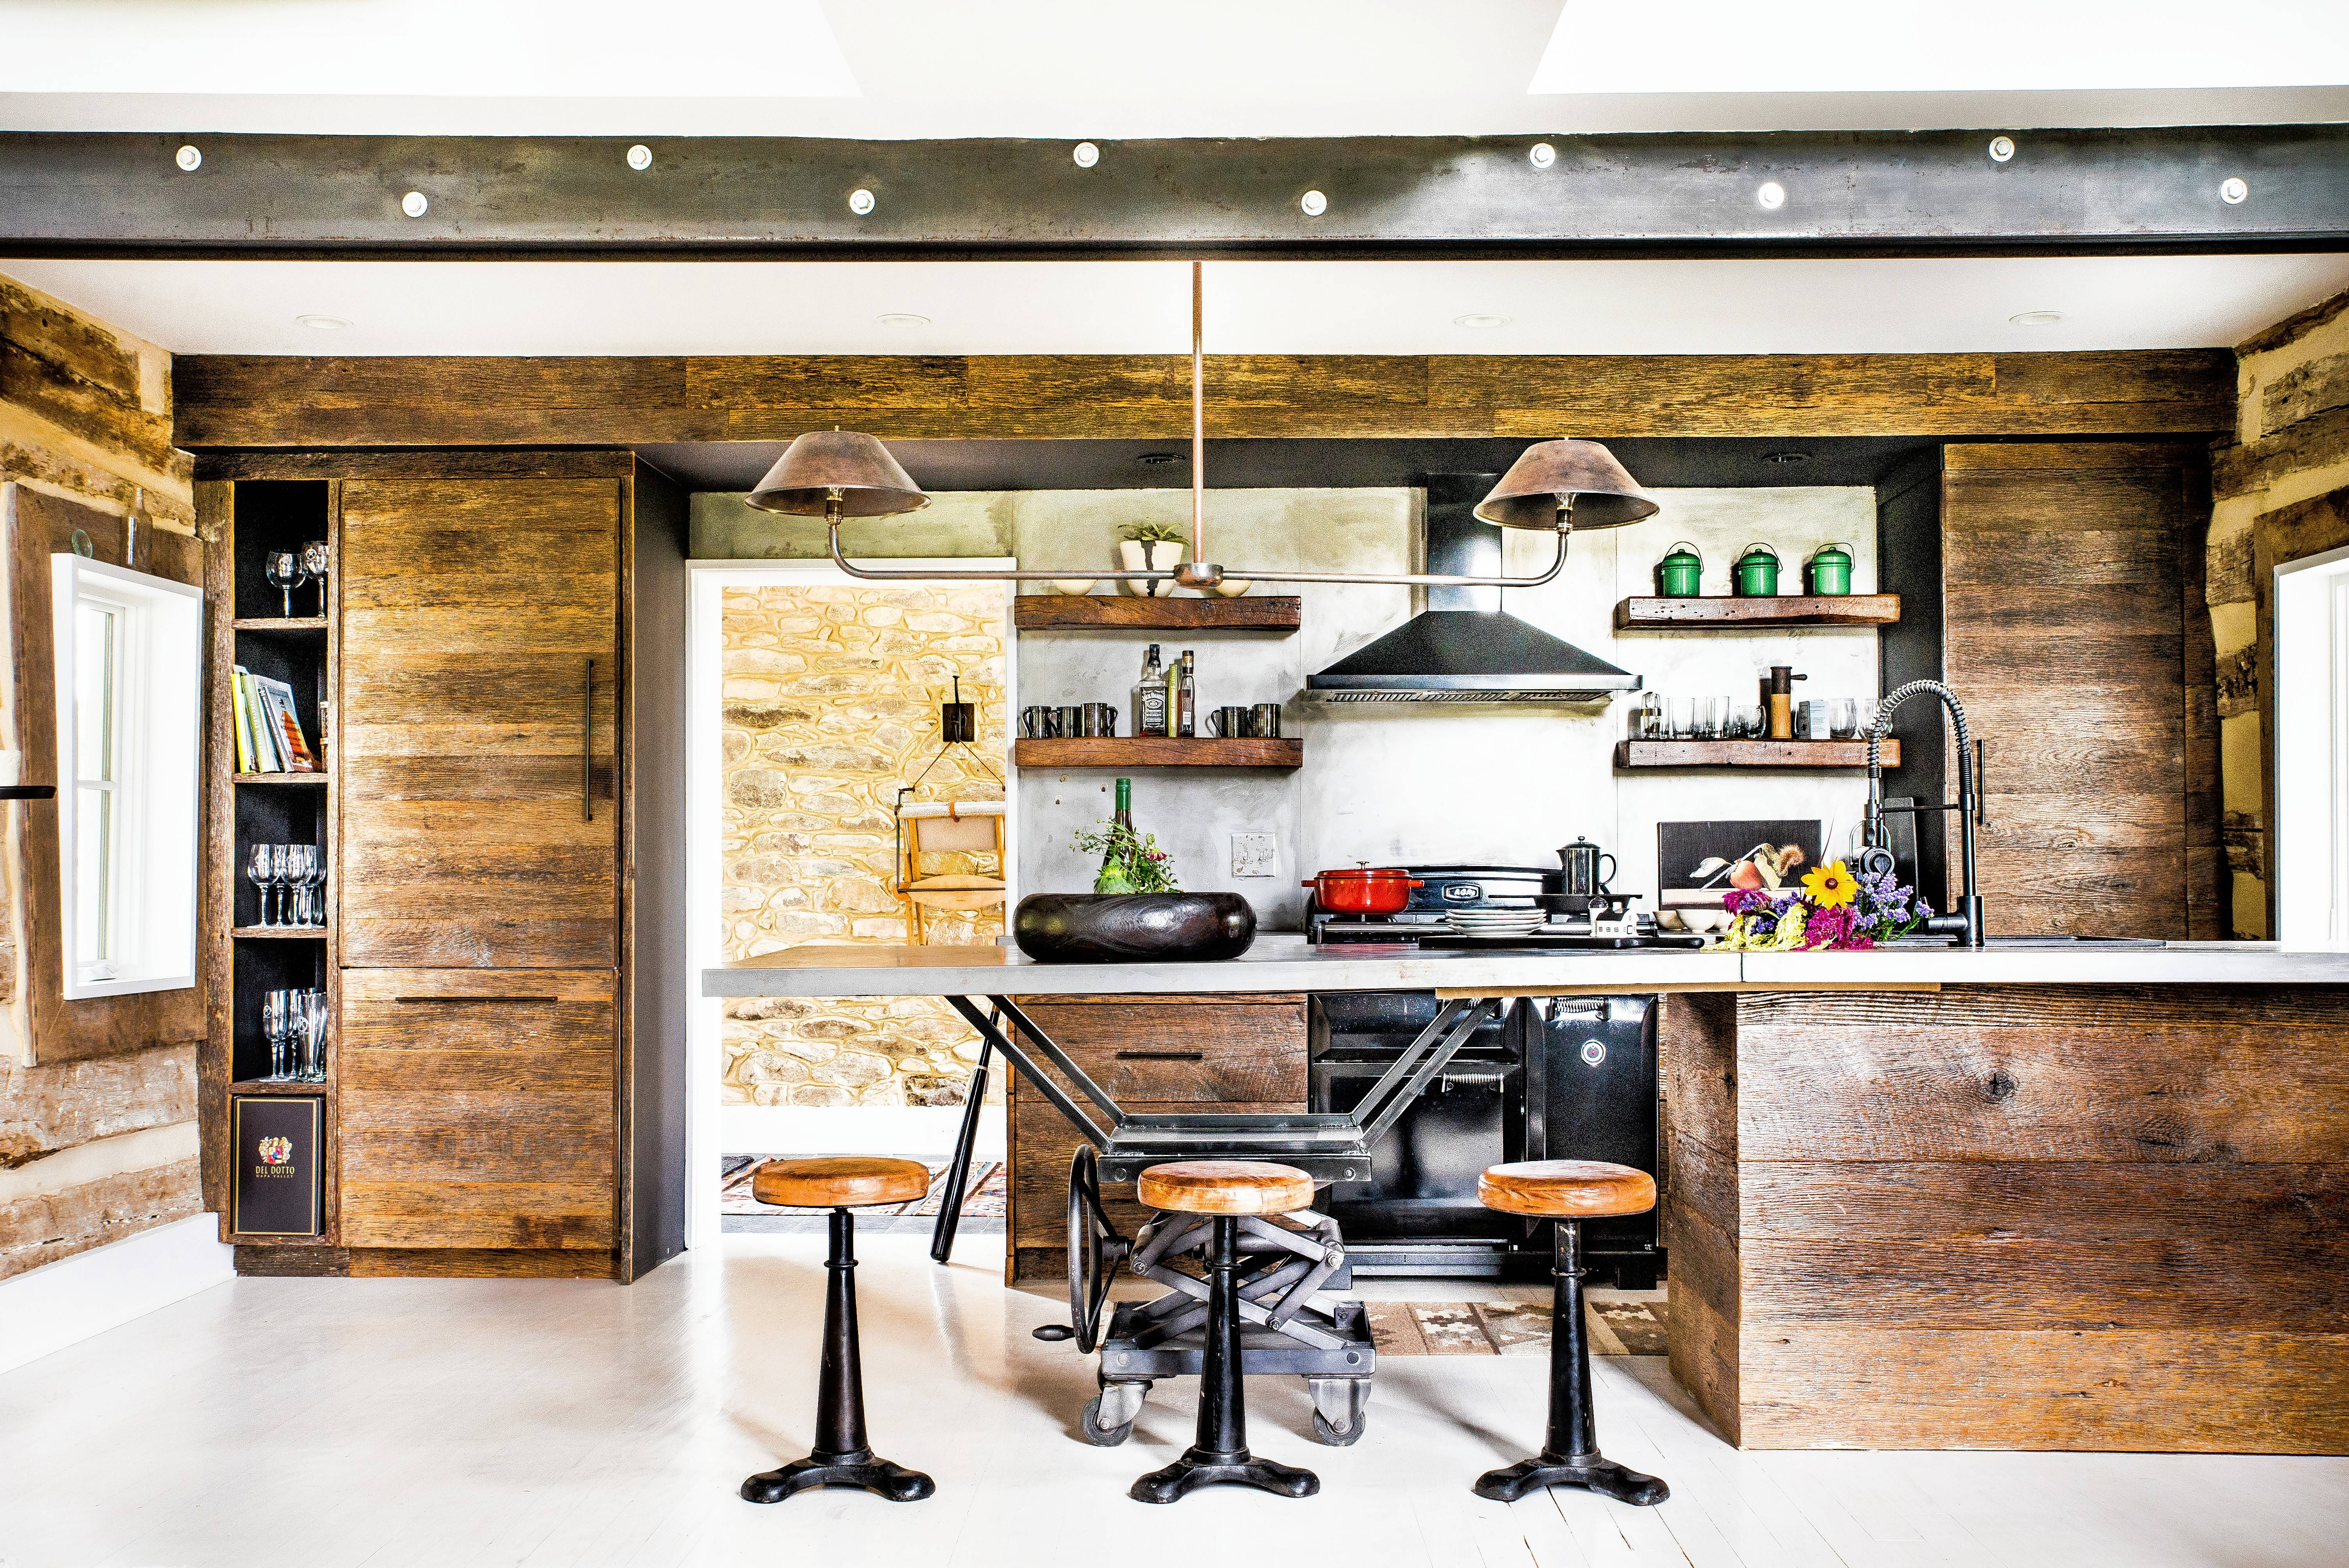 Charleston interior designer Cortney Bishop relied on a palette of stone, metal and wood and lots of black paint to turn this Round Hill, Virginia, relic into a posh escape.